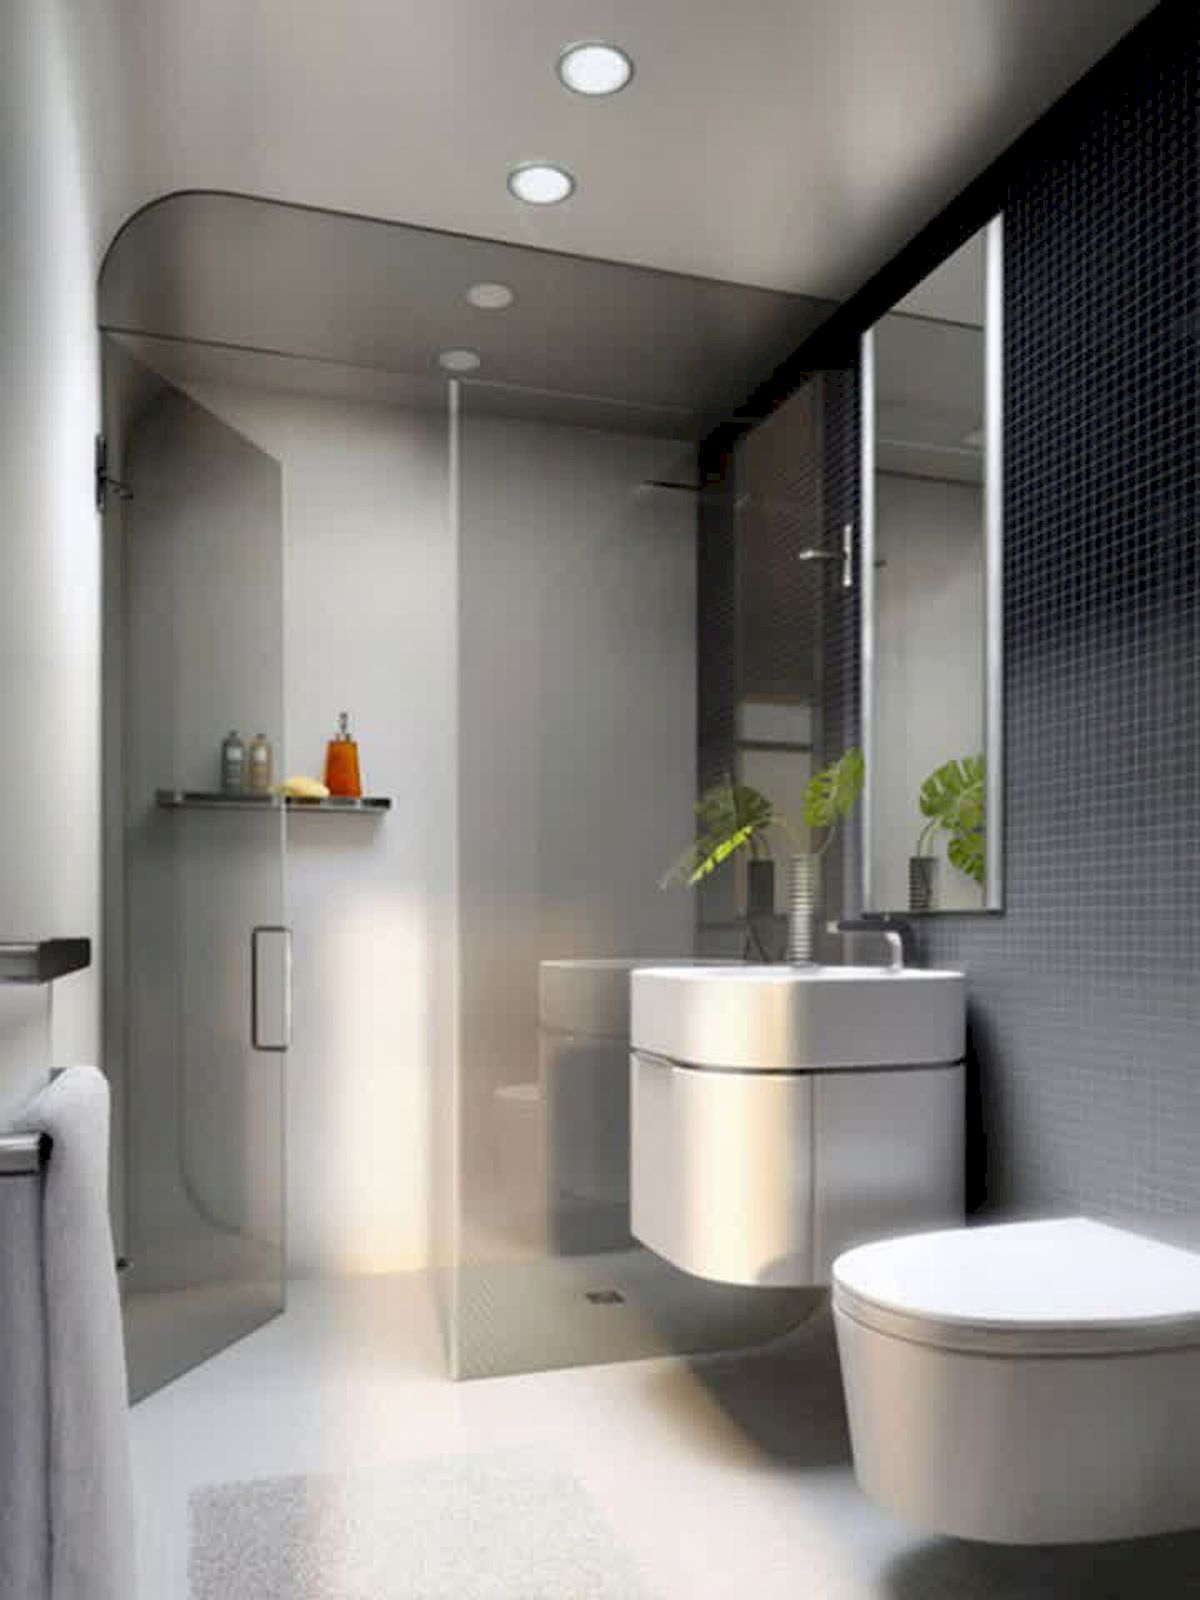 50 Small Guest Bathroom Ideas Decorations And Remodel - Small